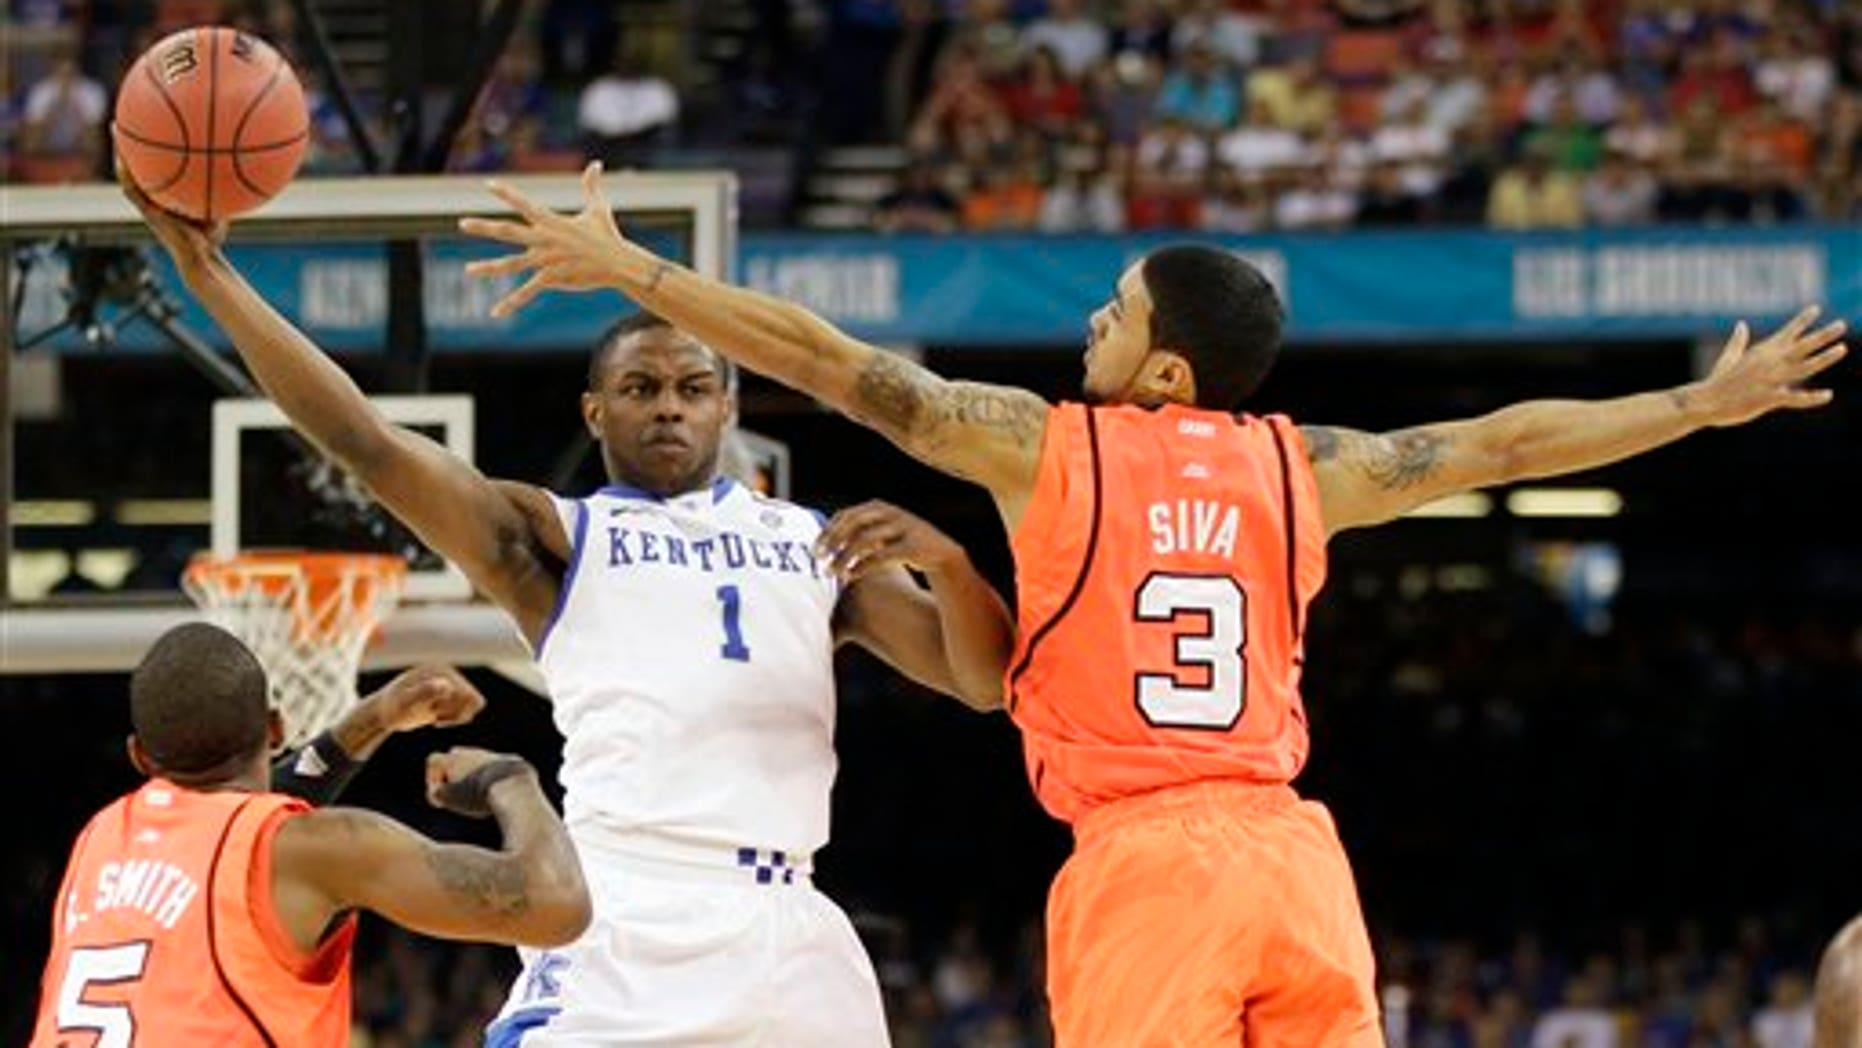 March 31, 2012: Kentucky's Darius Miller (1) passes over Louisville's Chris Smith (5) and Peyton Siva (3) during the first half of an NCAA Final Four semifinal college basketball tournament game in New Orleans.